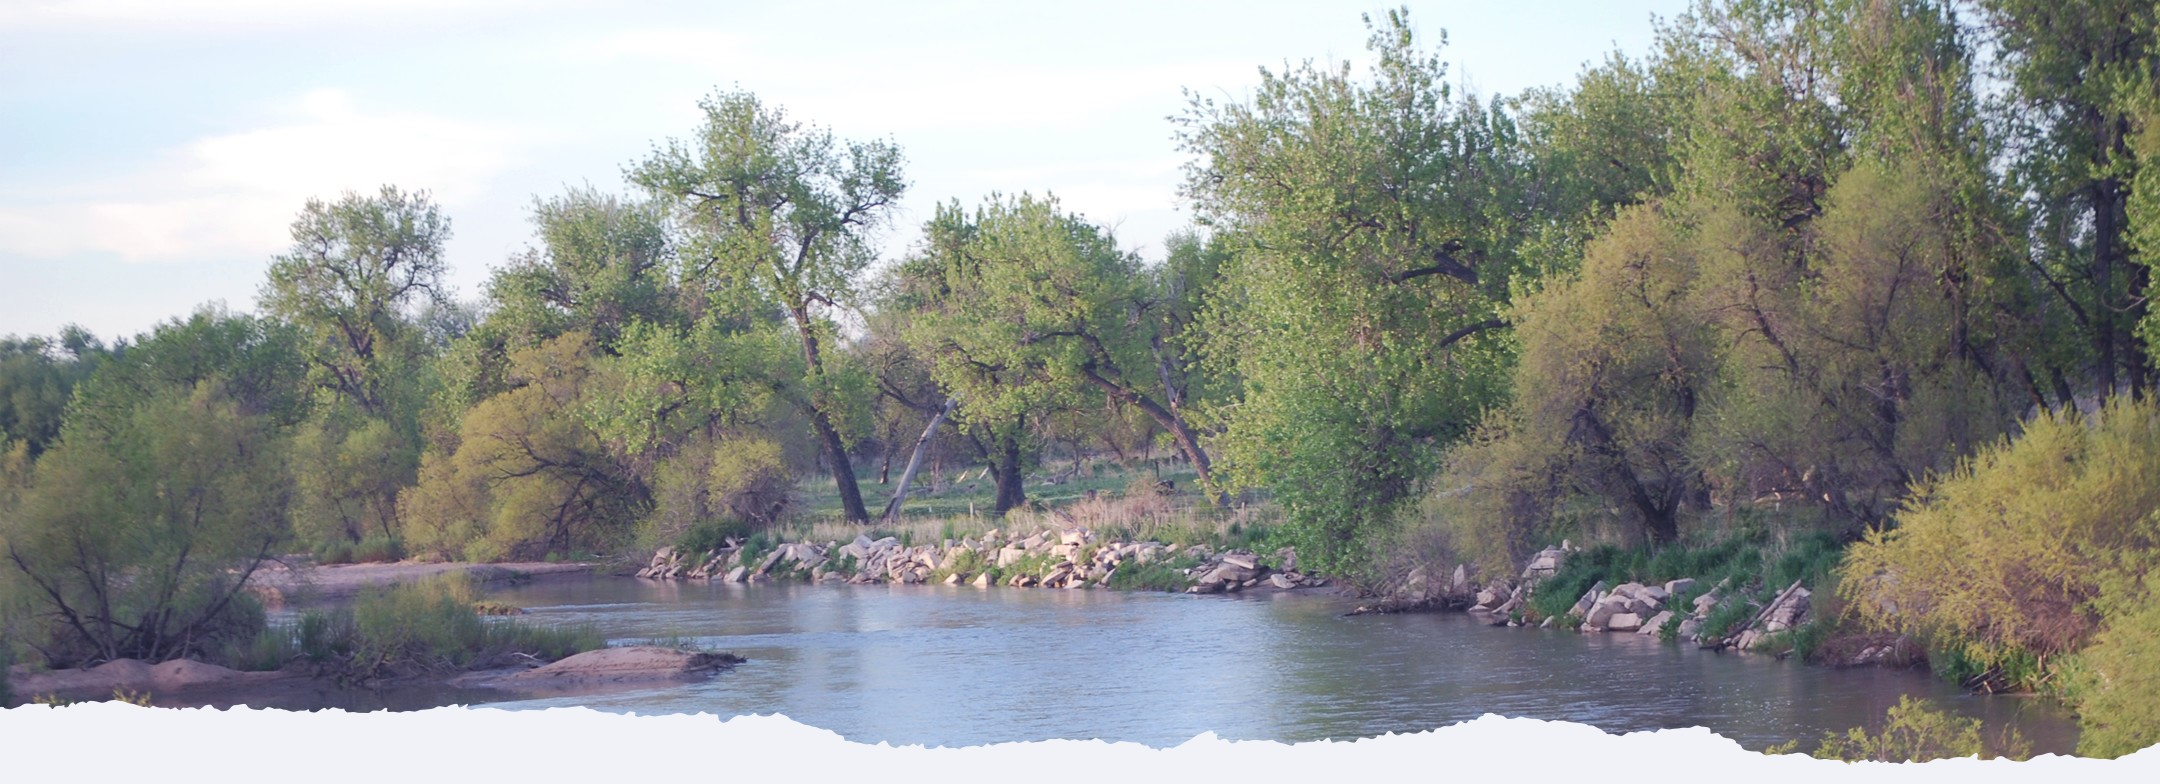 South Platte River Kersey Colorado